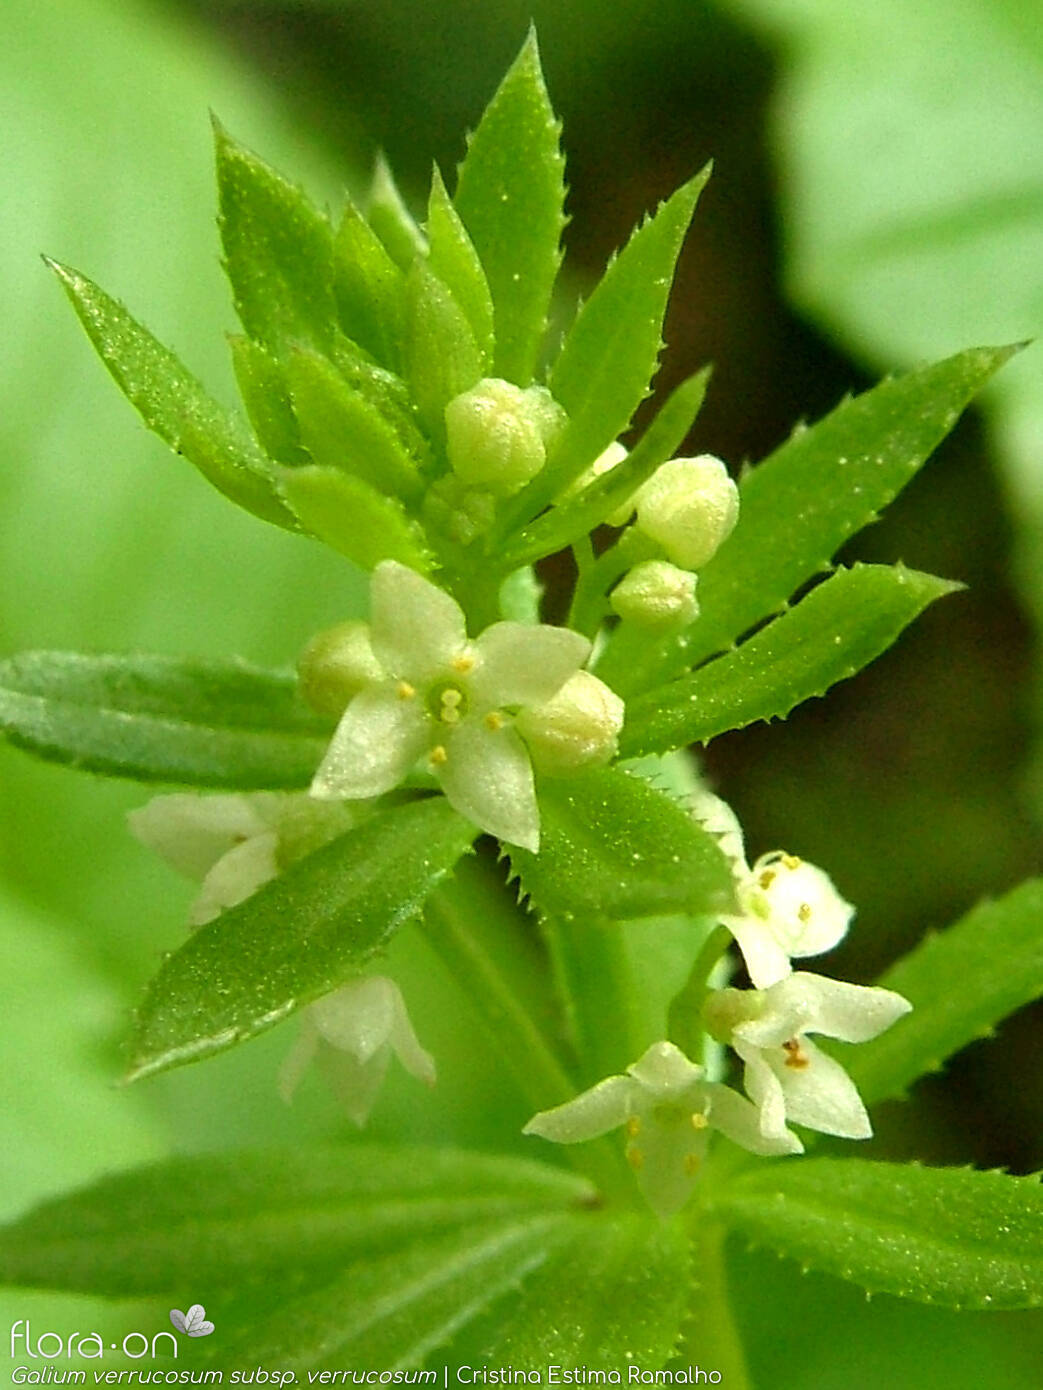 Galium verrucosum verrucosum - Flor (close-up) | Cristina Estima Ramalho; CC BY-NC 4.0